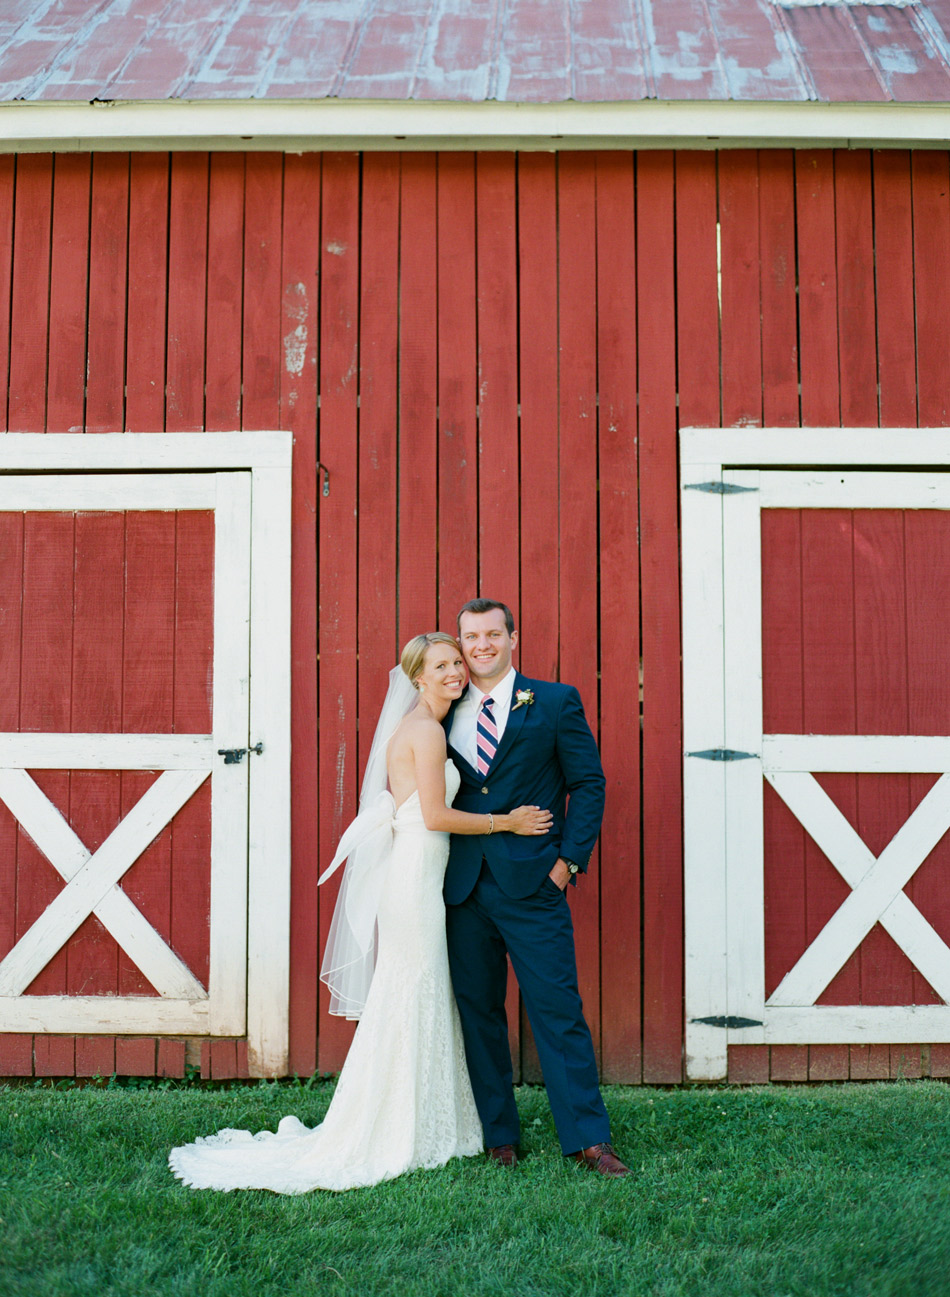 Stephanie + John on June 22, 2013 ♥ Lucy O Photo at the Inn at Westwood Farm (Orange, VA)